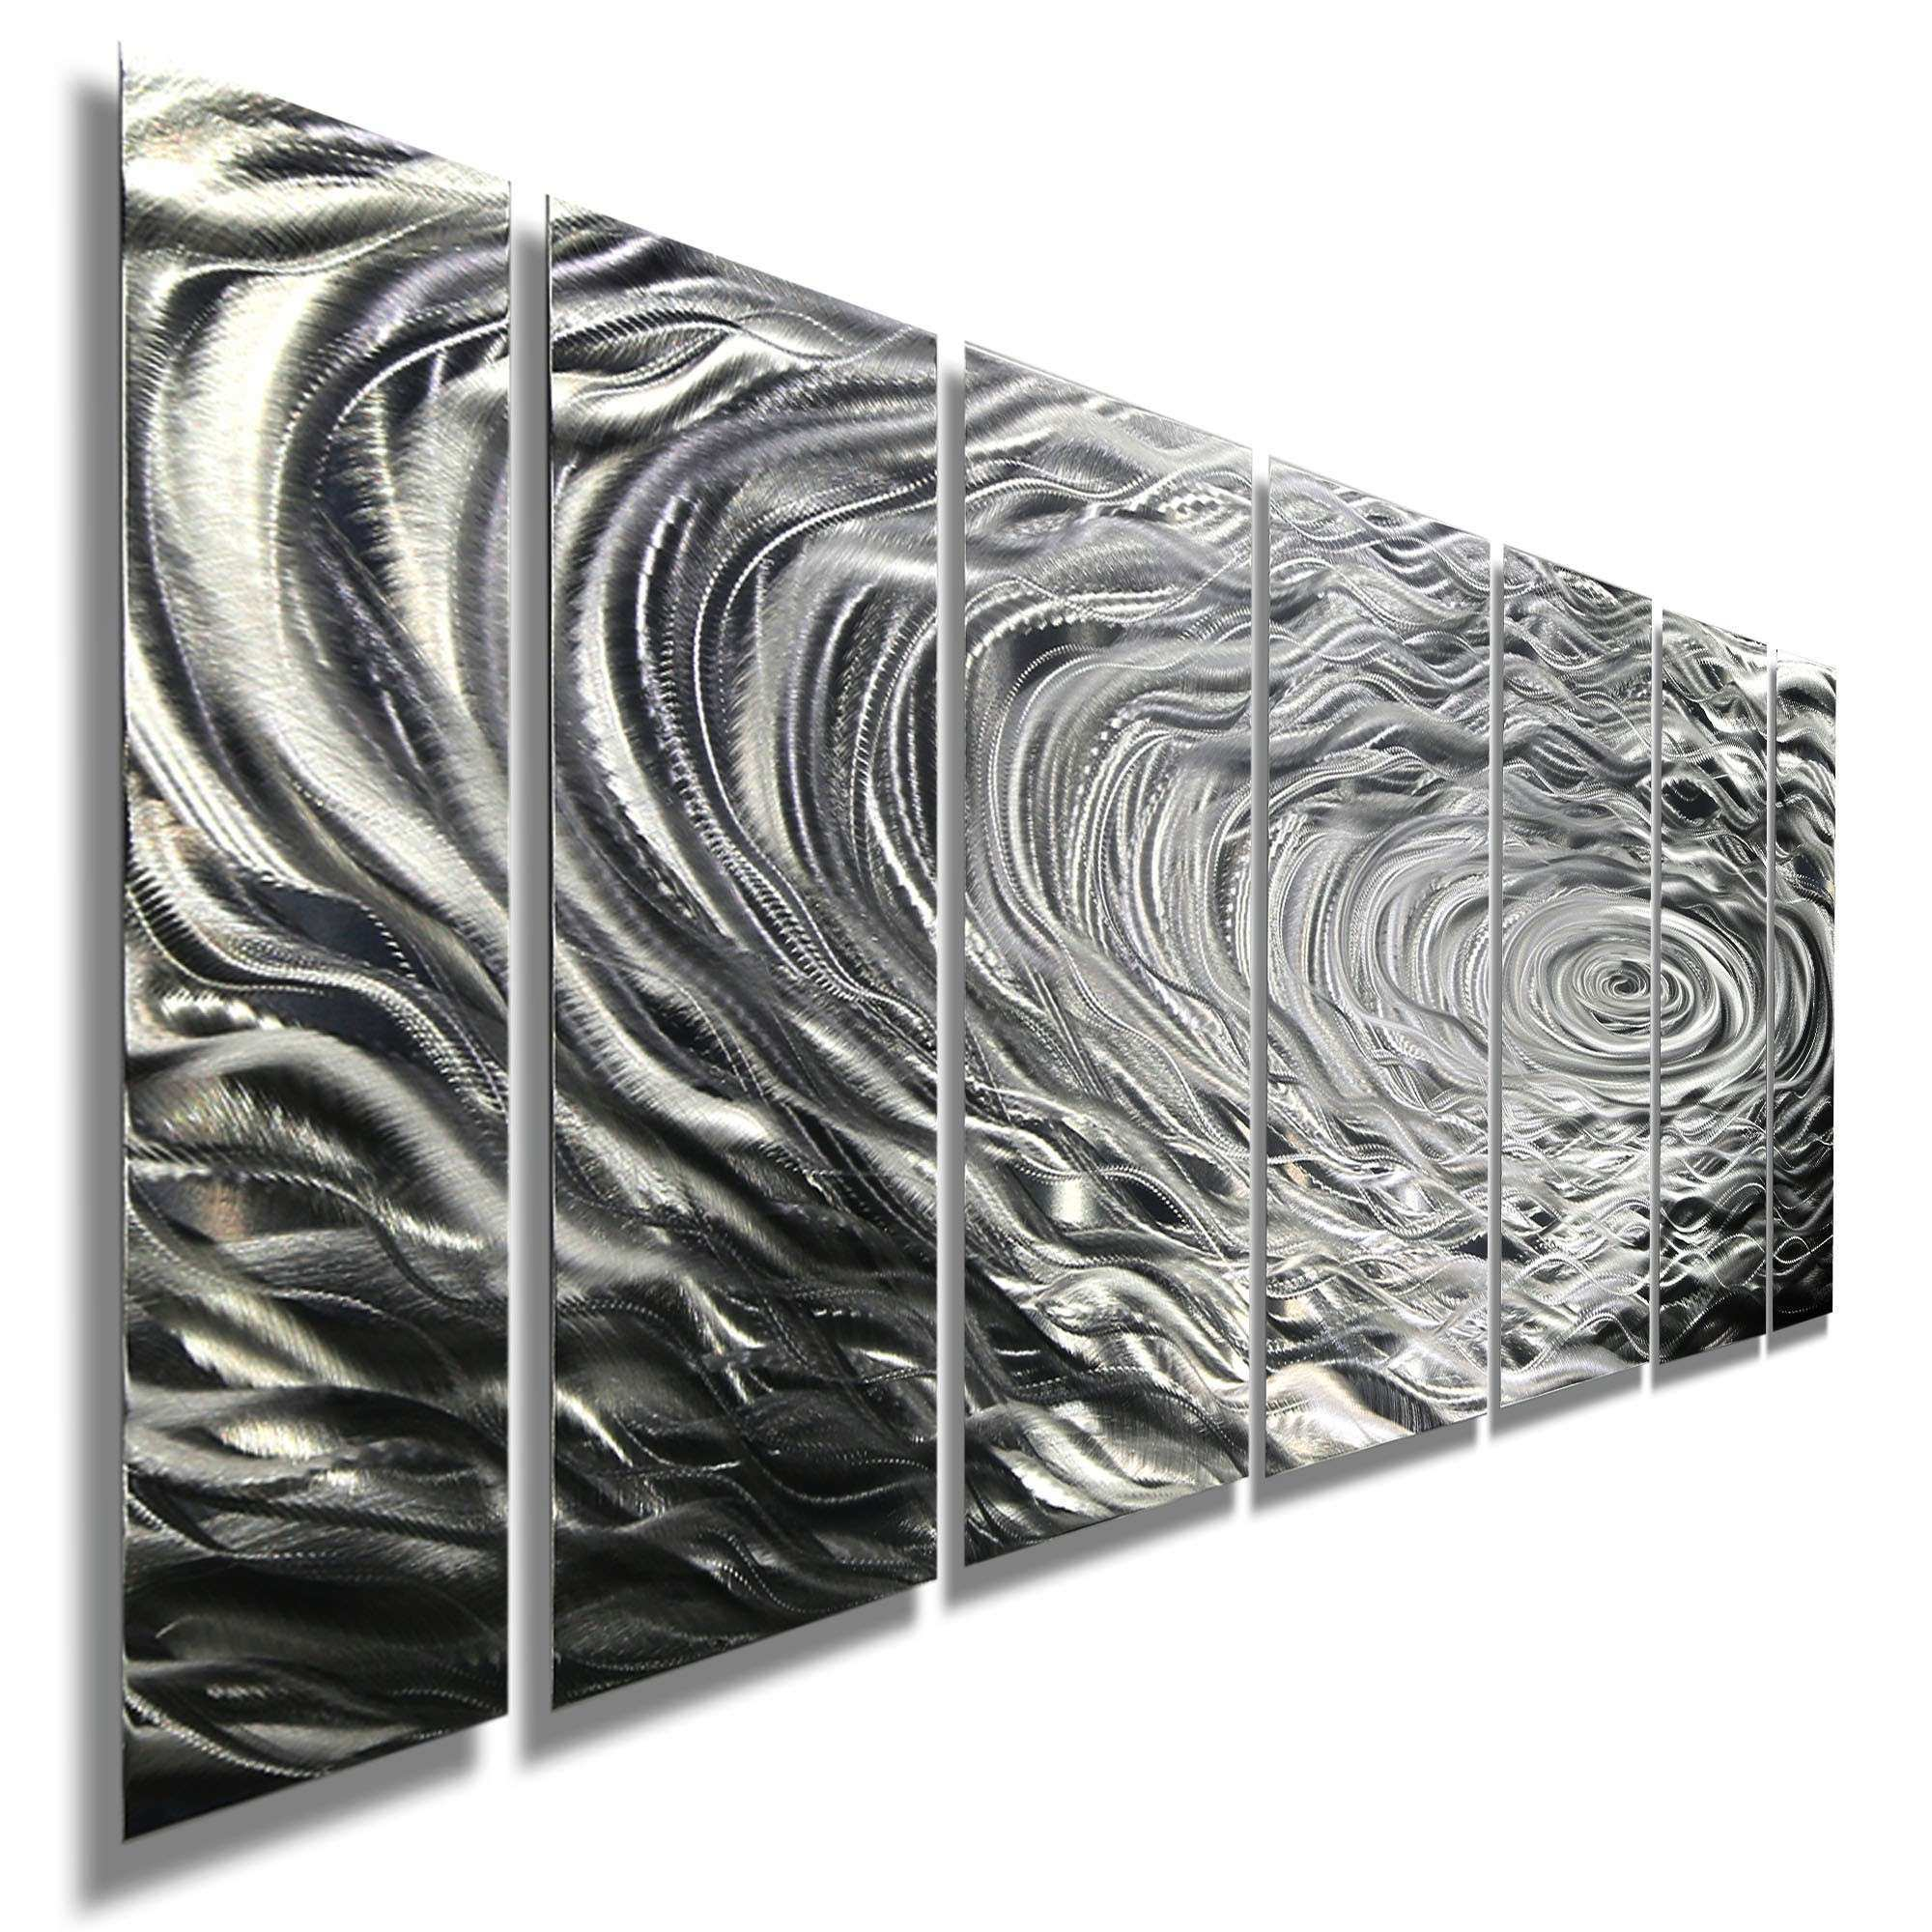 Modern Silver Abstract Metal Wall Art Home Decor Ripple